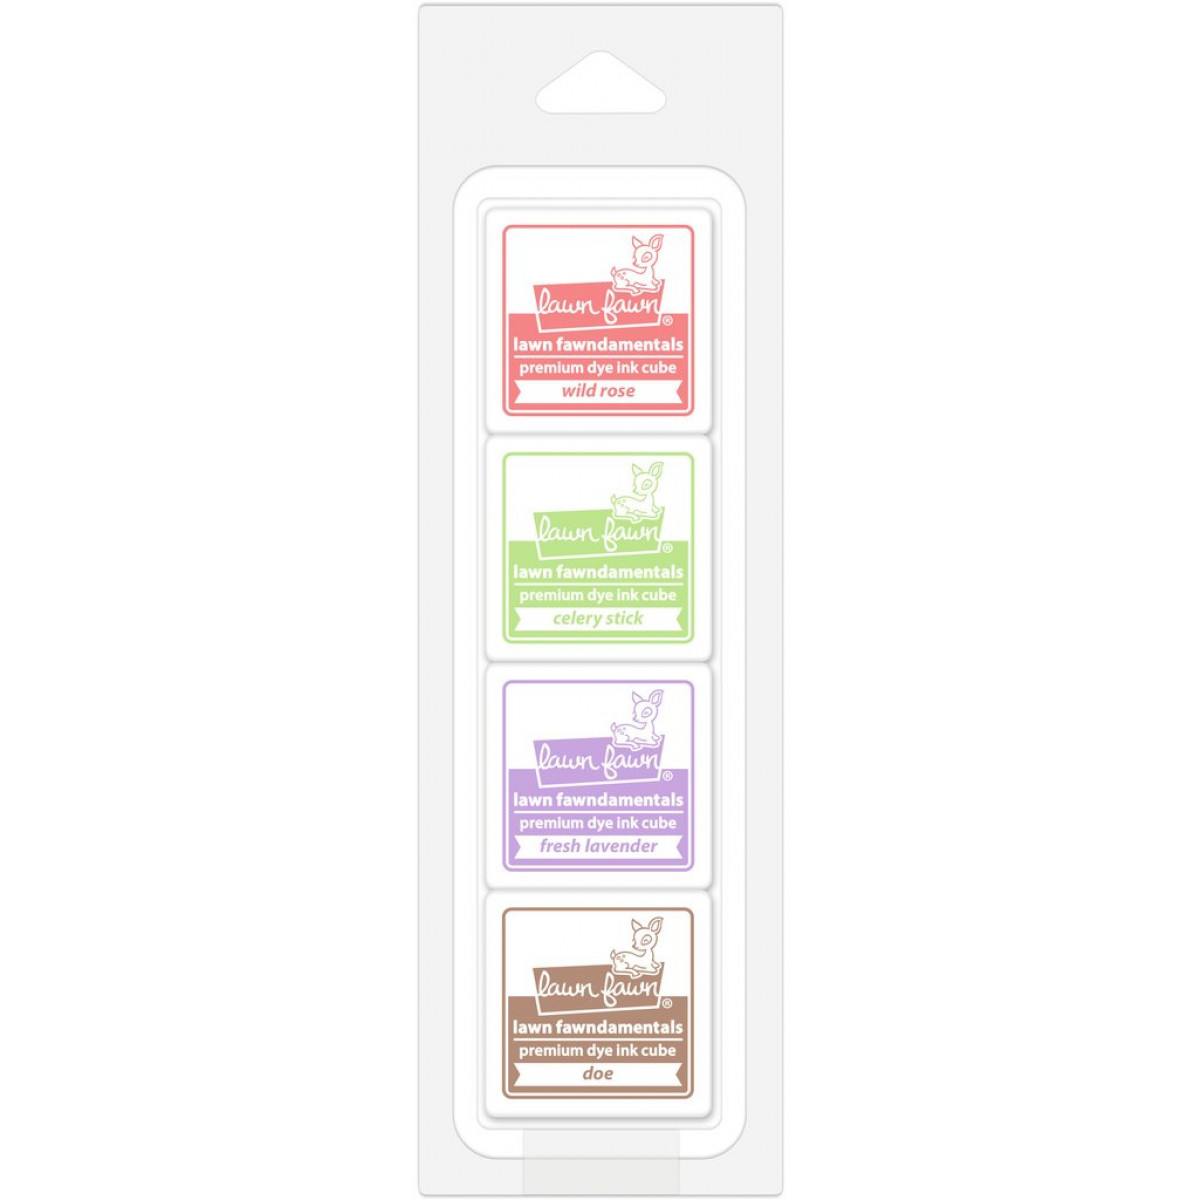 Lawn Fawn Tea Party Ink Cube Pack